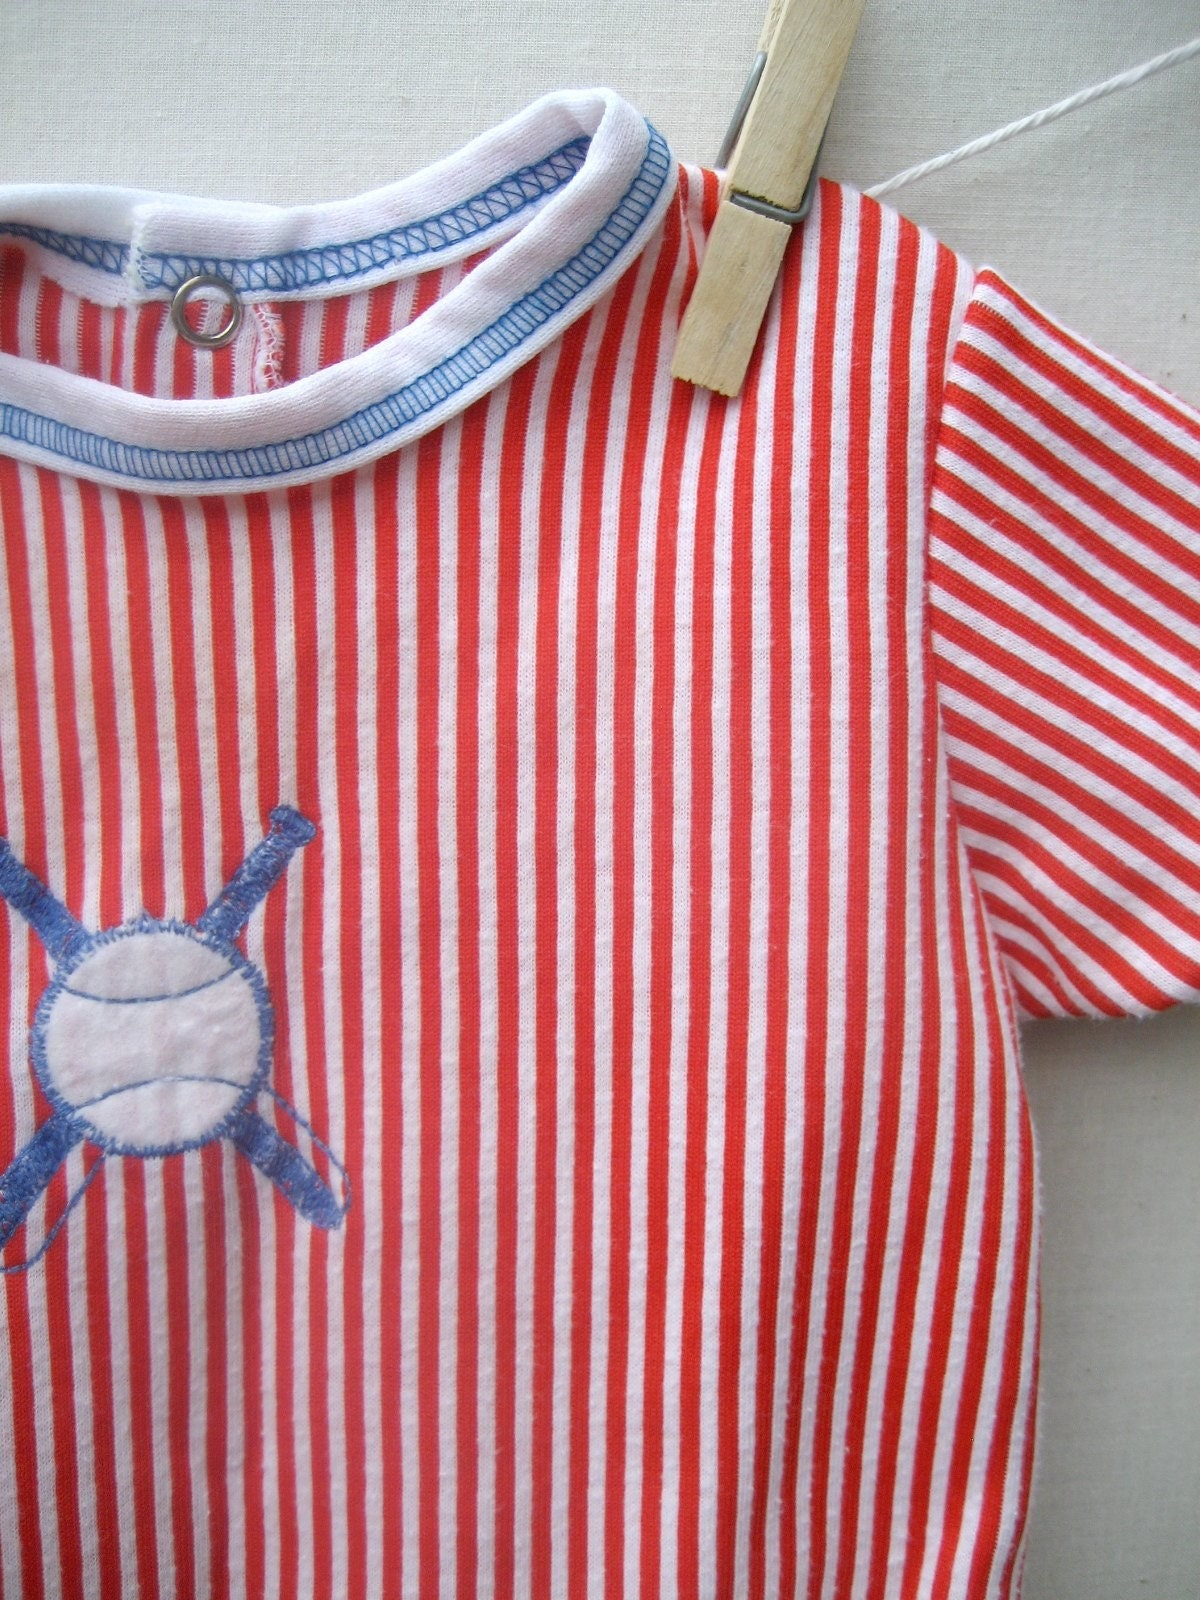 Vintage Baby Striped Baseball Onesie